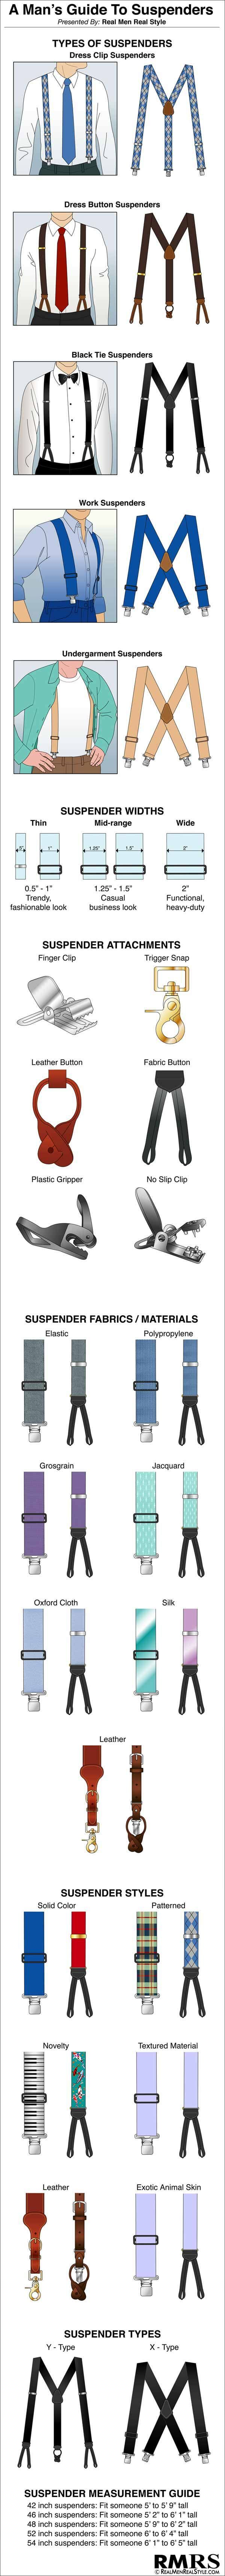 a complete visual guide to men's suspenders, how to wear suspenders casually